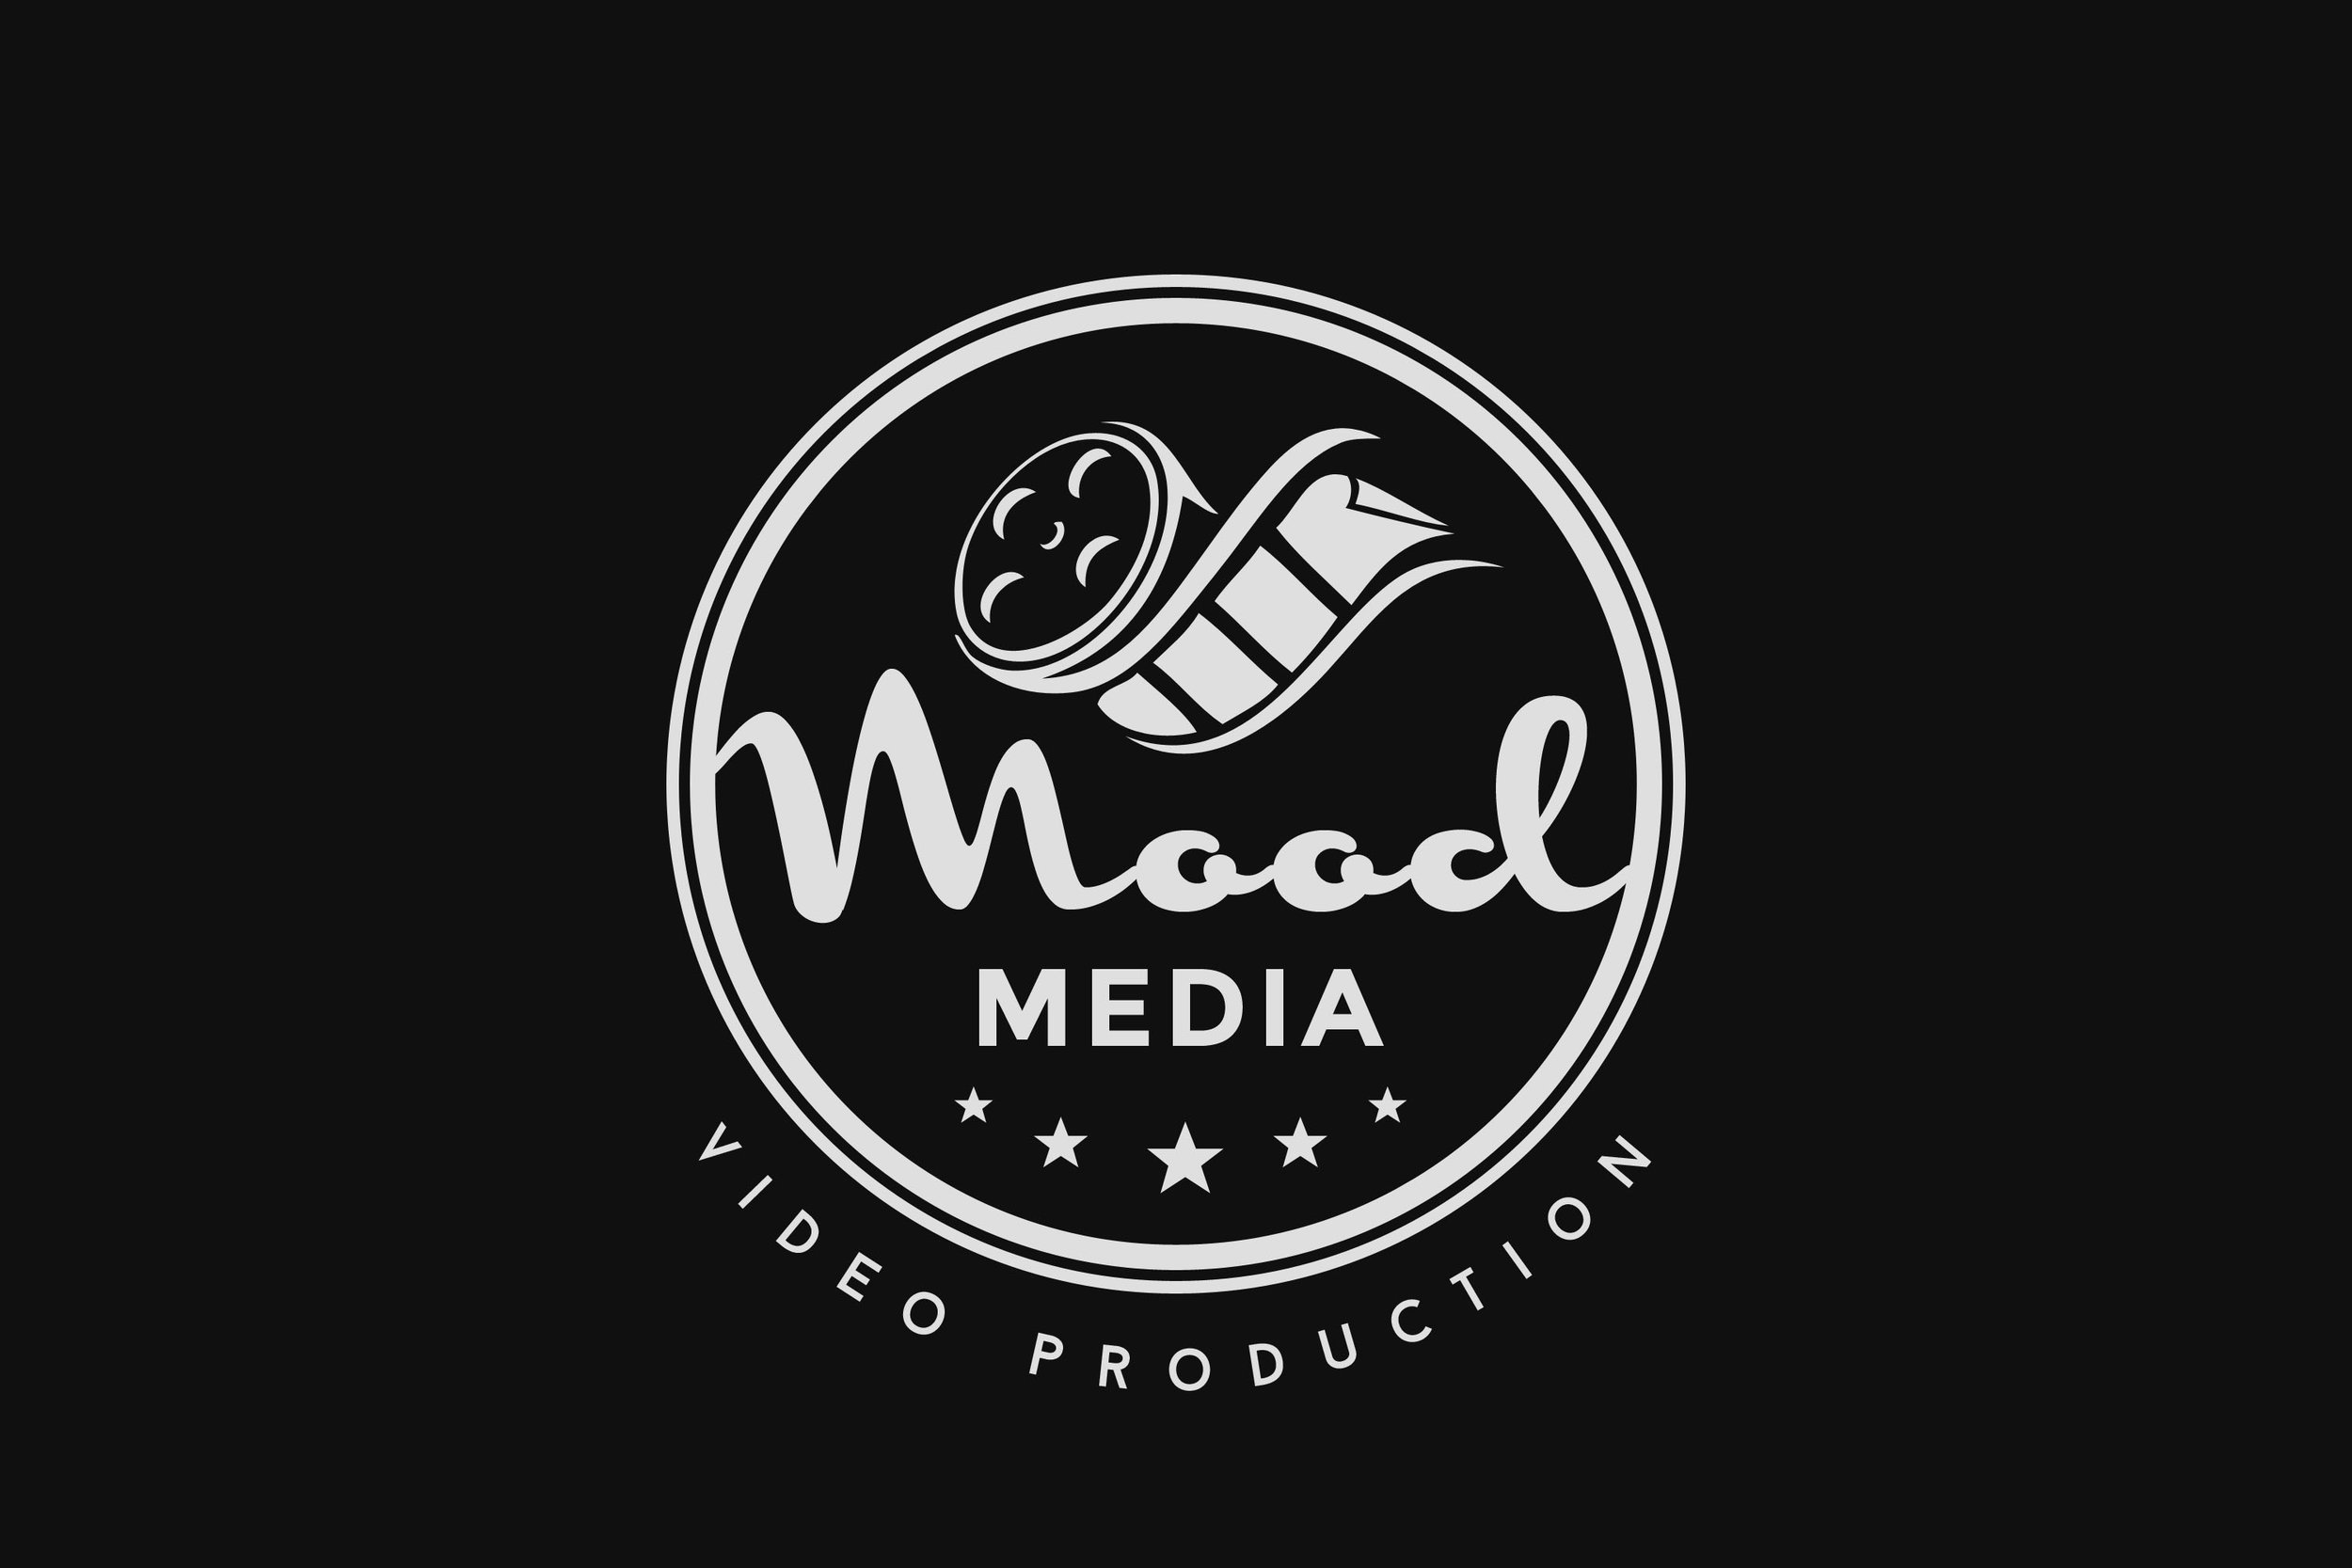 LOGO Mood Media.jpeg